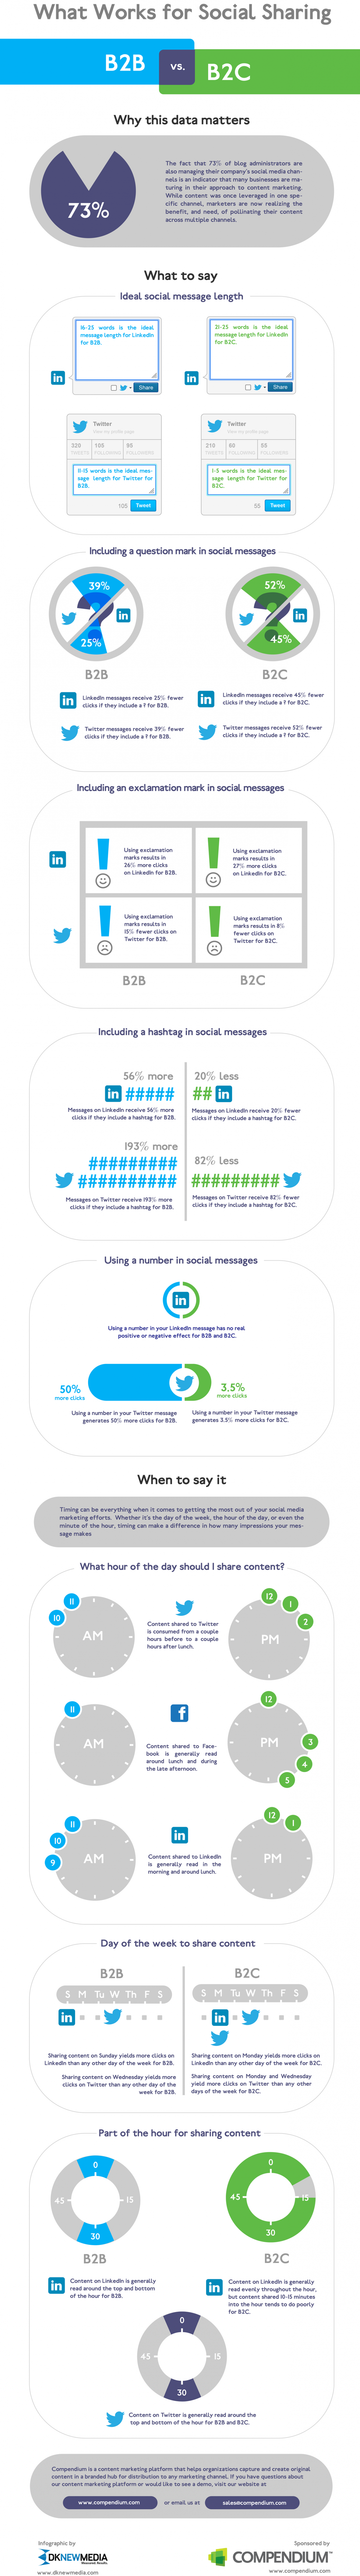 What Works for Social Sharing Infographic